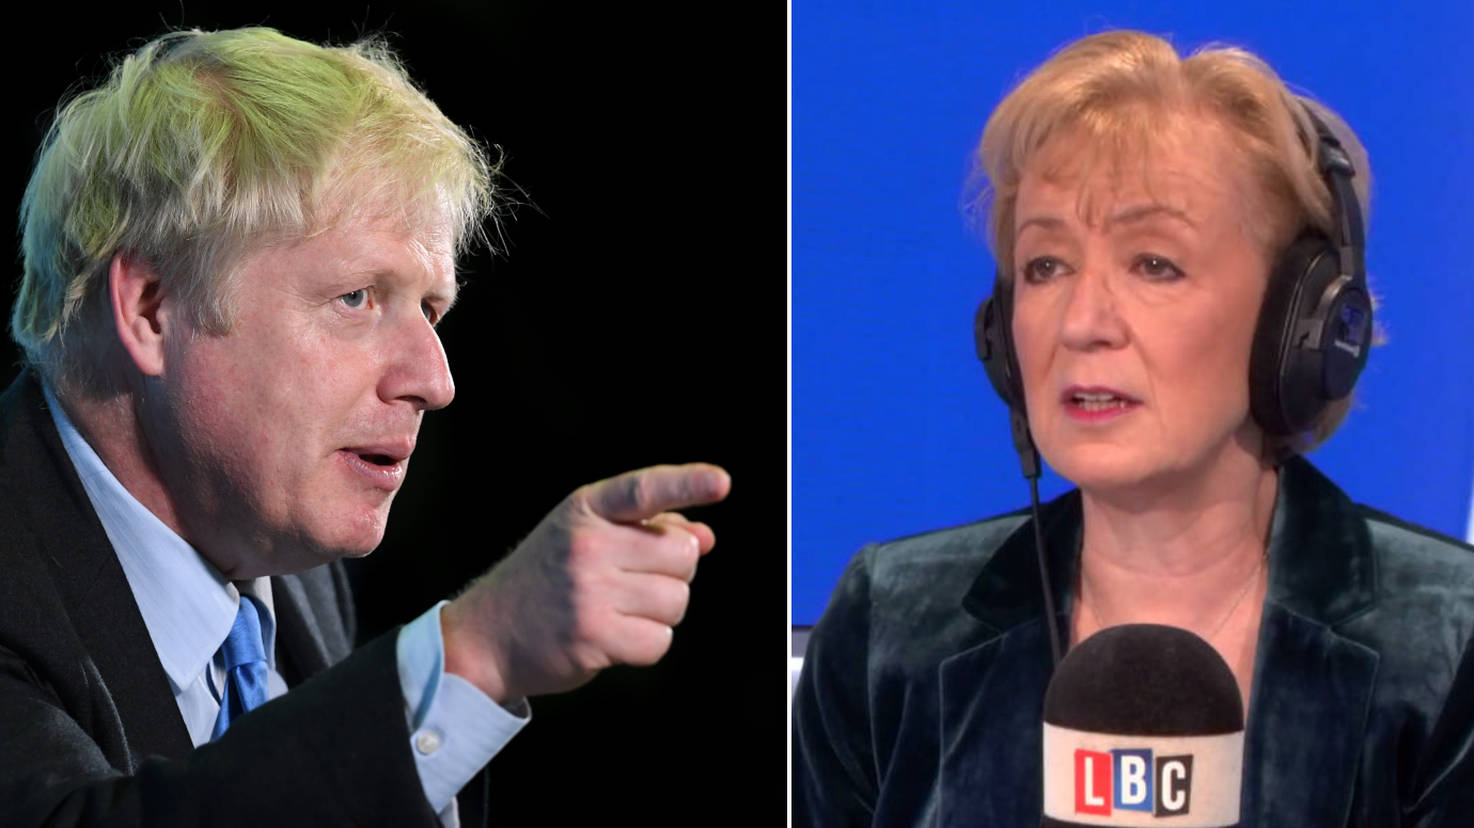 Andrea Leadsom Hints At What Boris Johnson's Plan For No-Deal Brexit Could Be